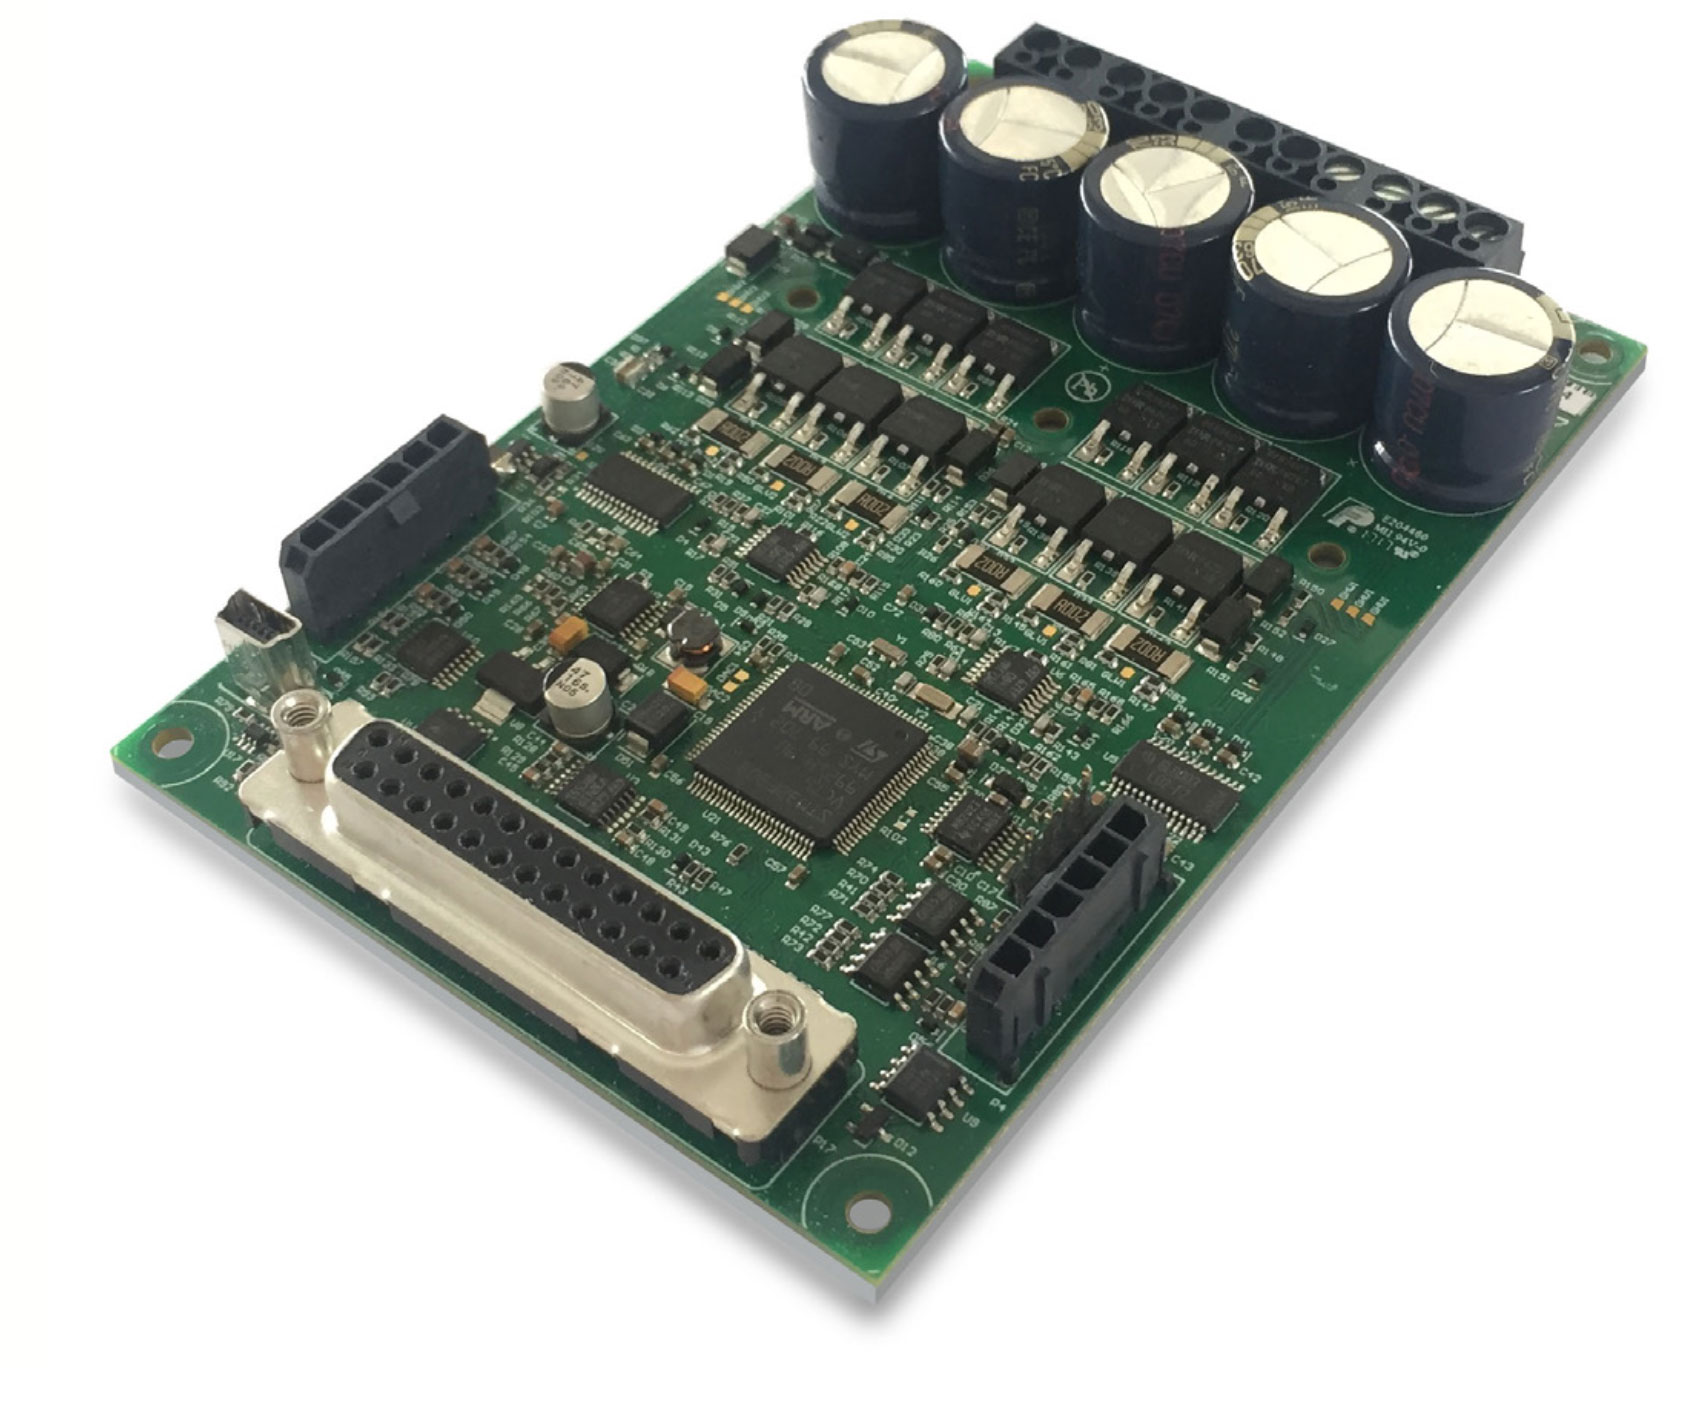 SBL2360S Single Channel 60A, 60V Brushless Motor Controller